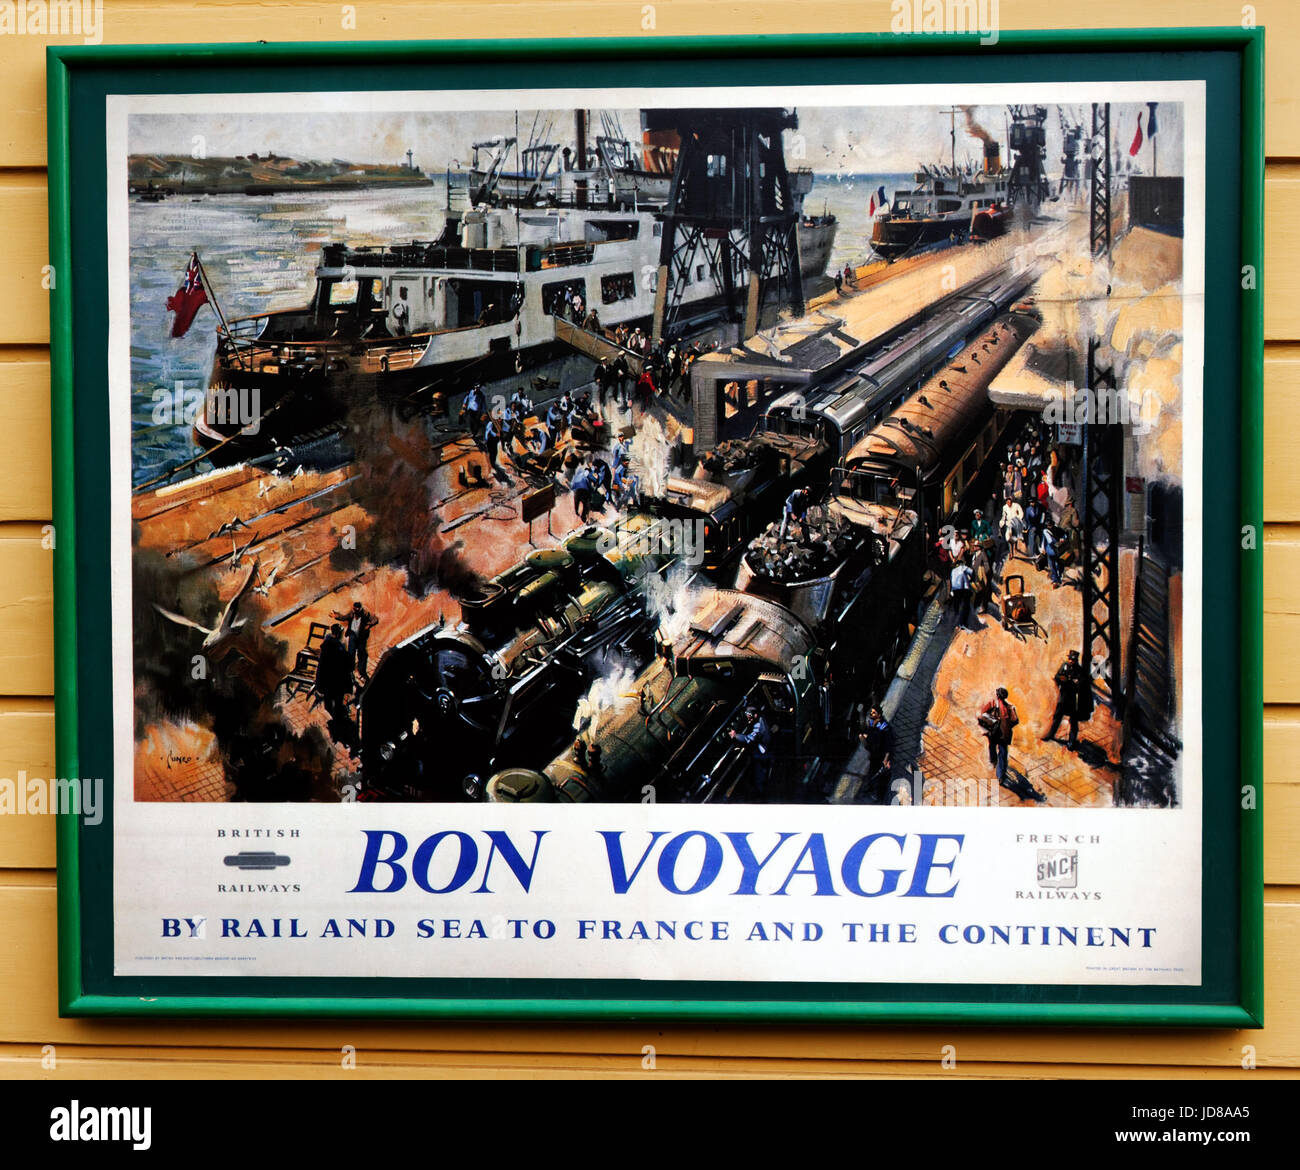 Old fifties style British Railways poster for going to Europe by train on the Swanage steam railway - Stock Image